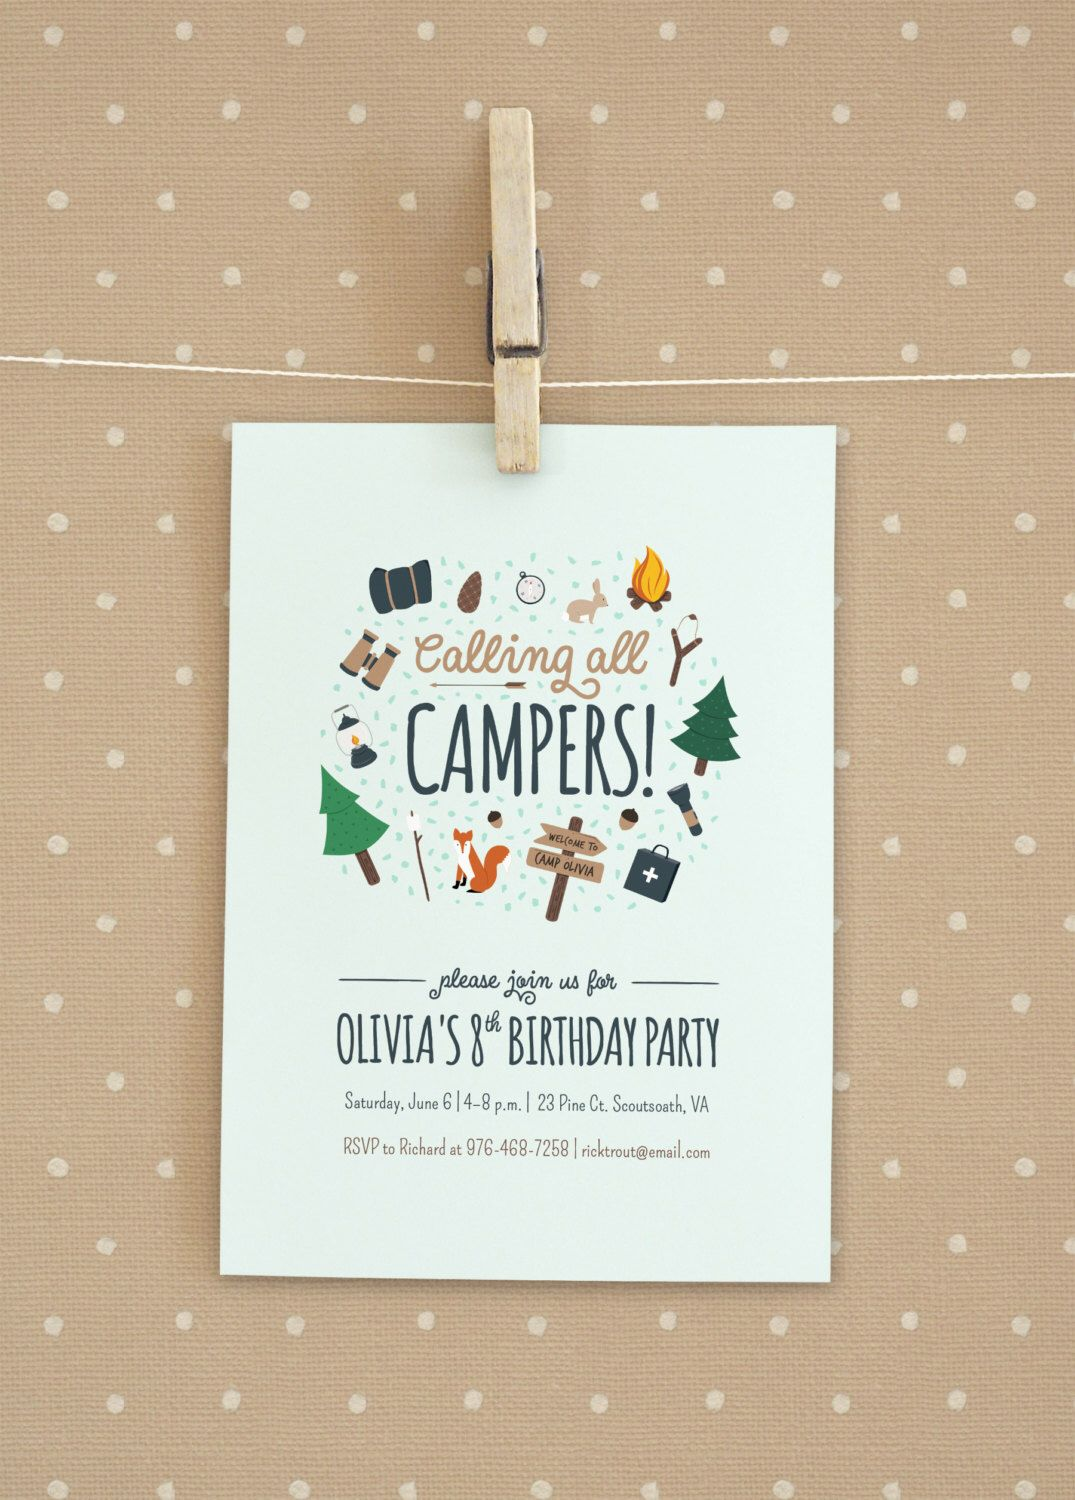 Camping Birthday Party Invitation | Party invitations, Birthdays ...